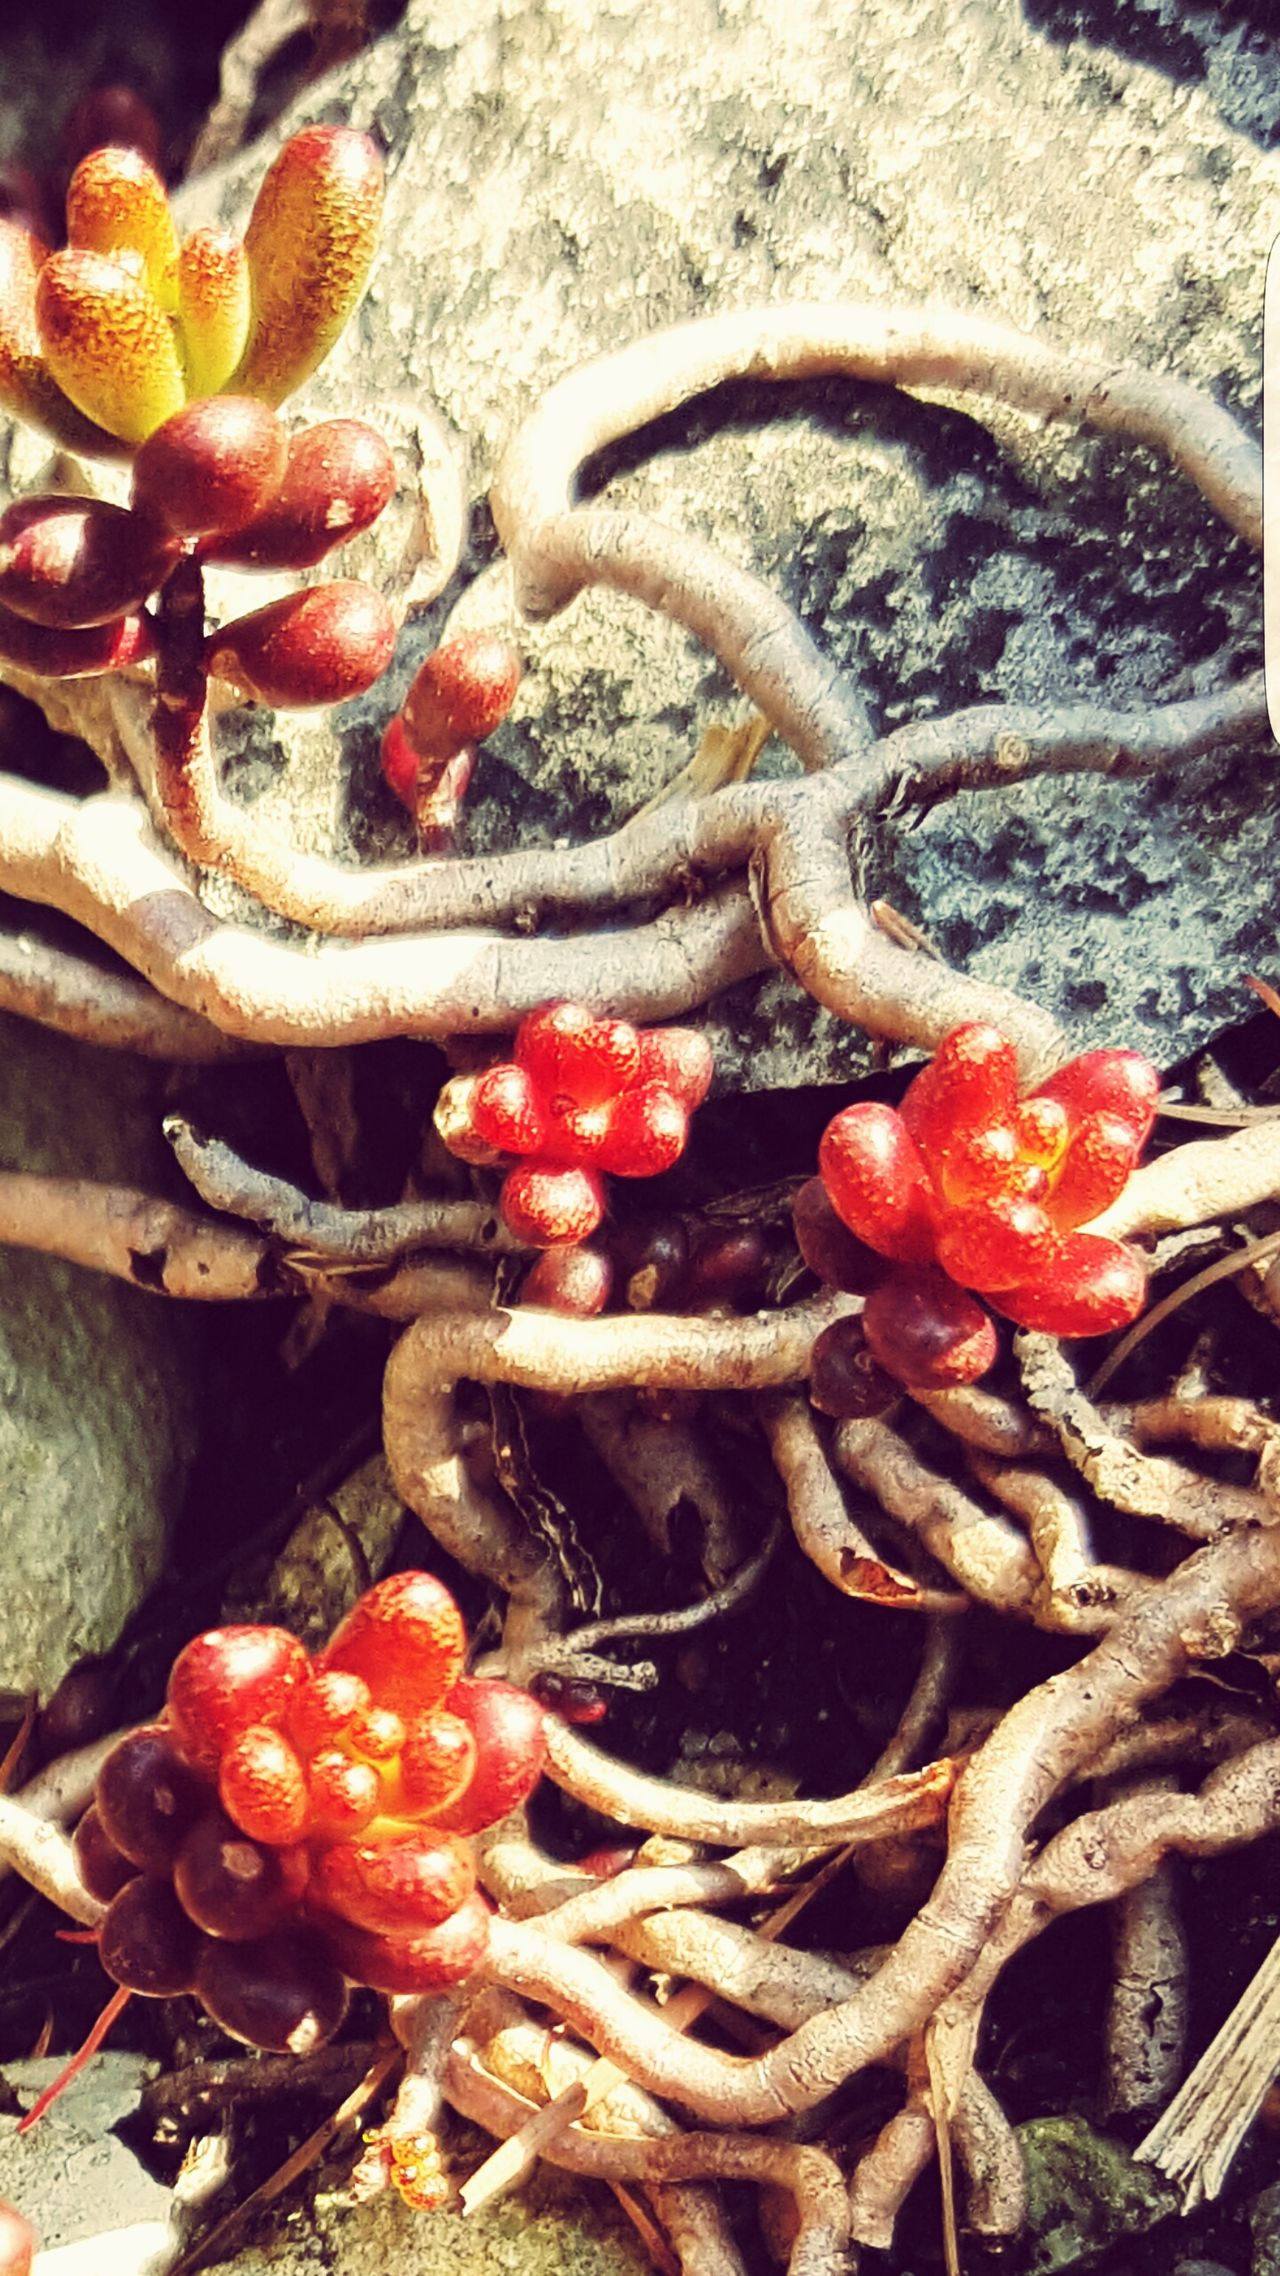 No People Close-up Outdoors Plant Roots Red Berrys